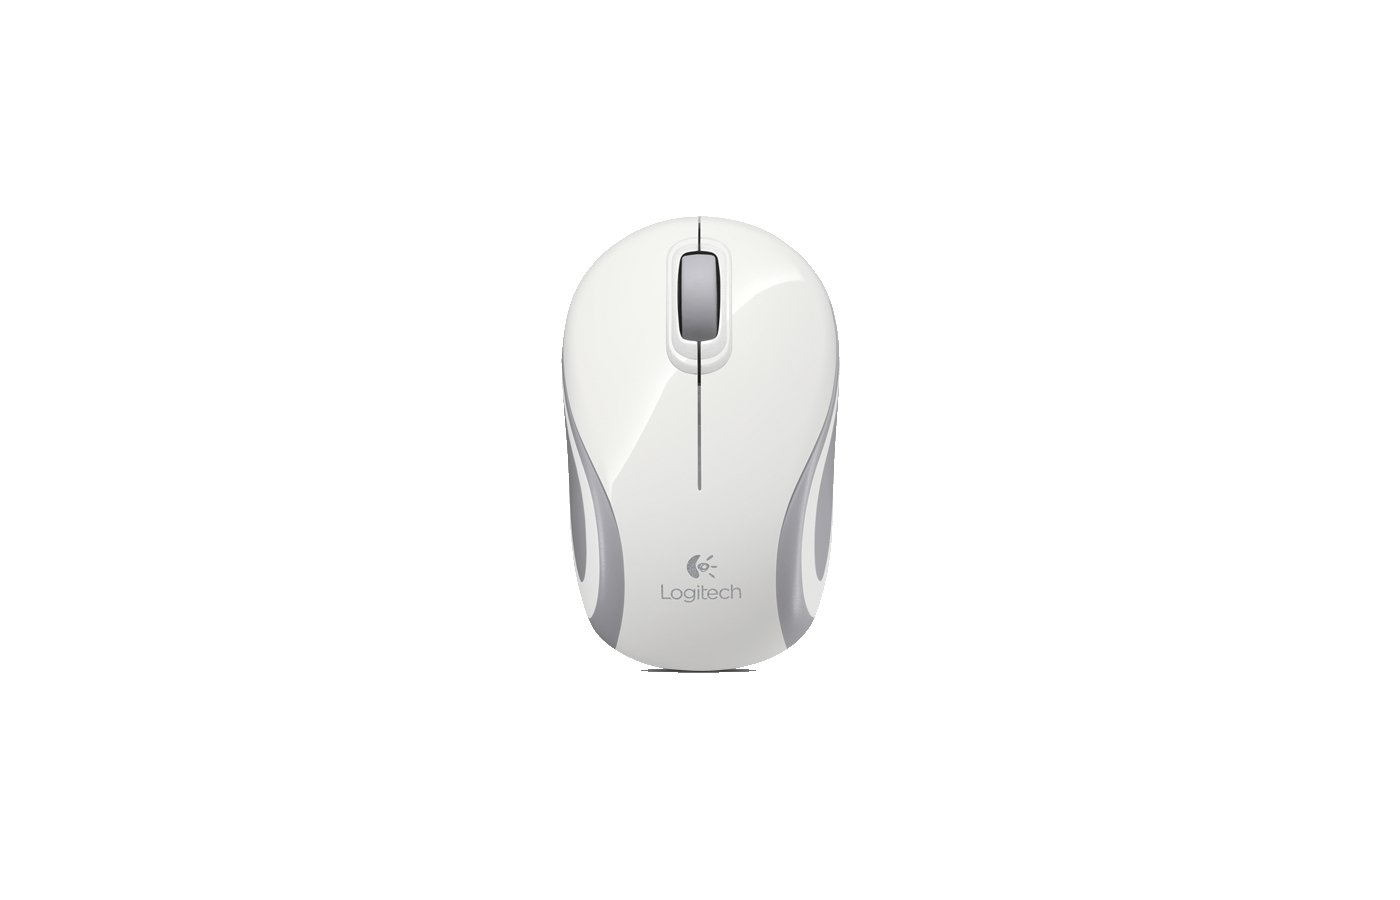 Мышь беспроводная Logitech Wireless Mini Mouse M187 White-Silver USB